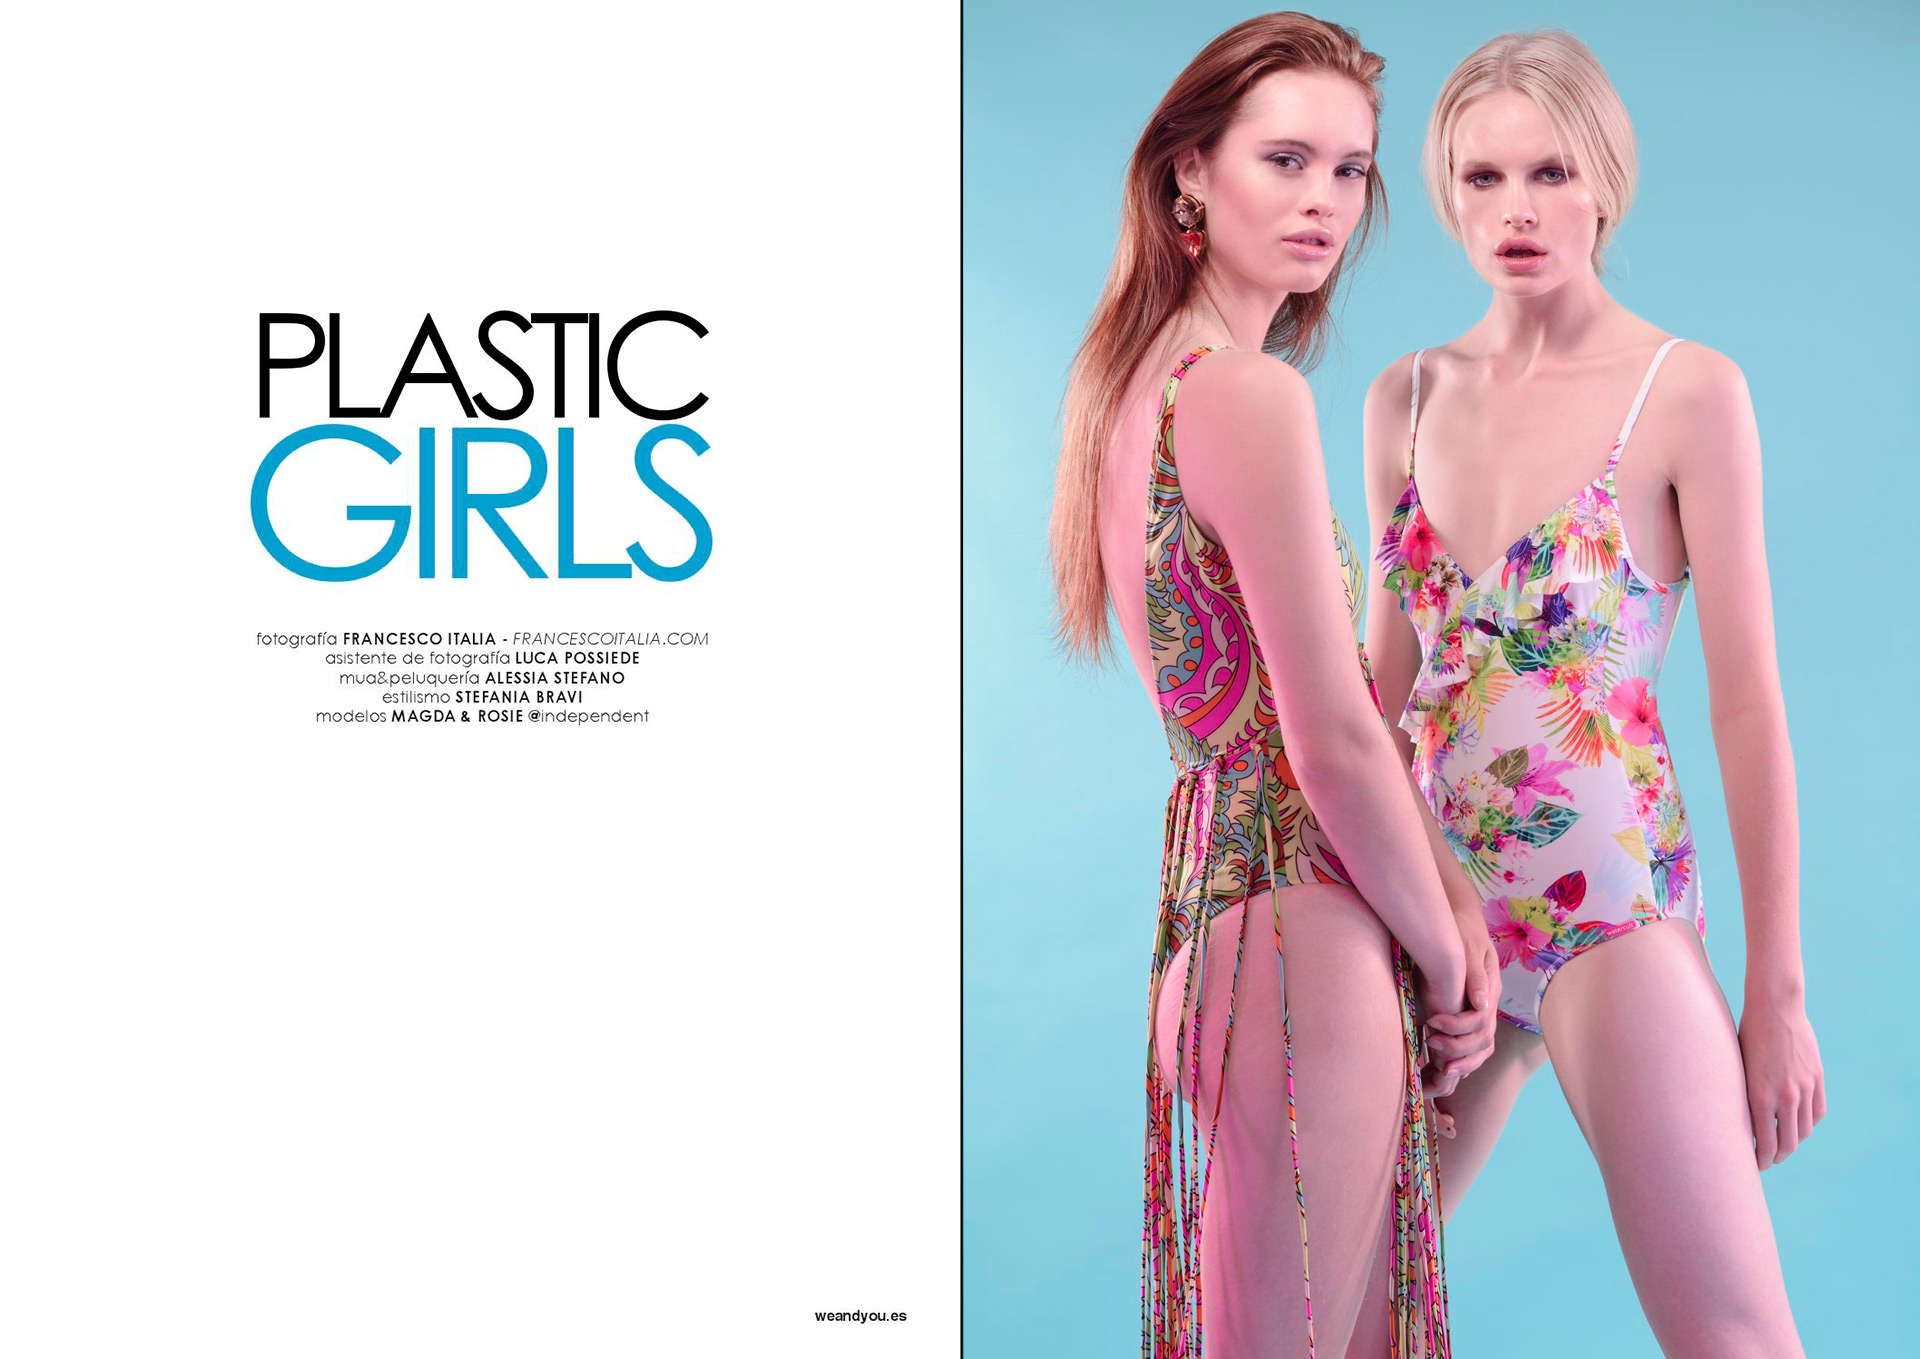 Plastic Girls